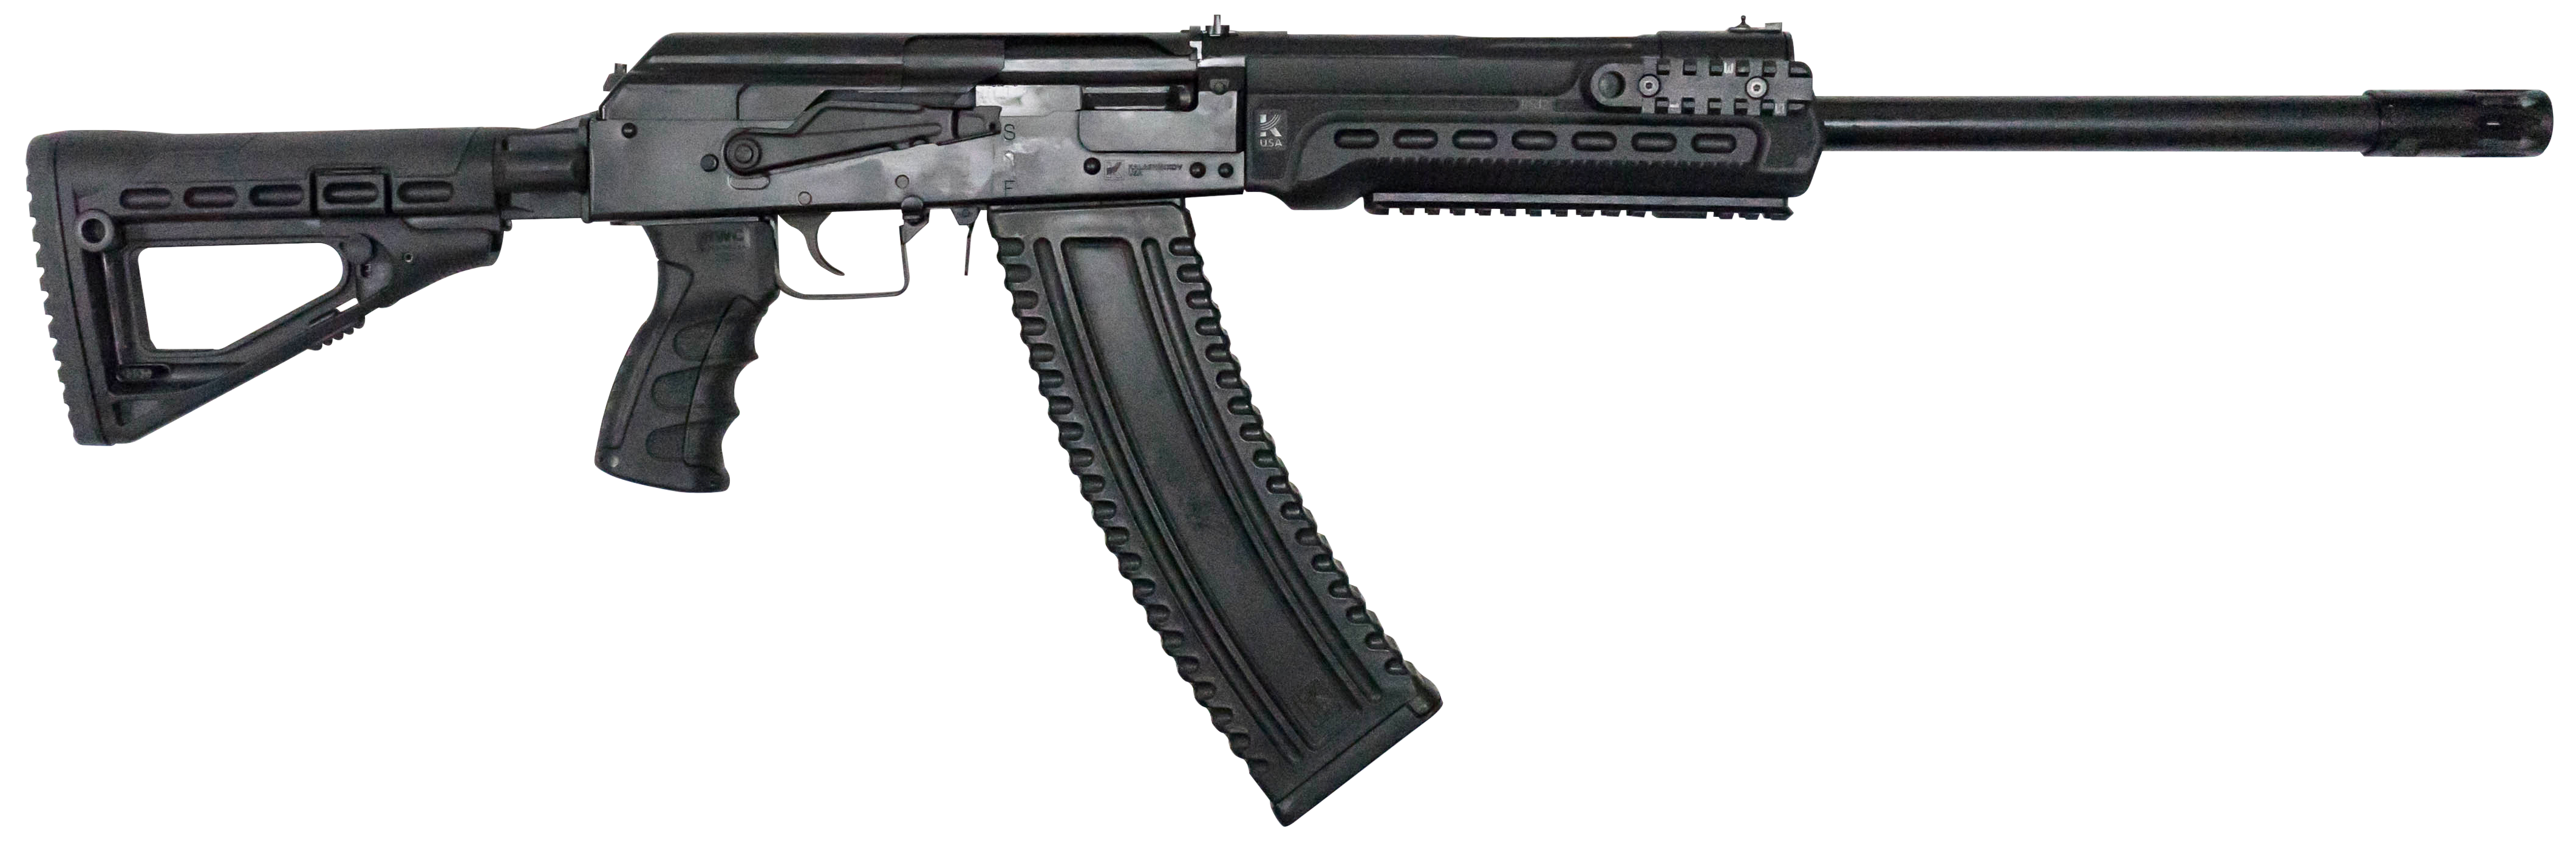 Kalashnikov Arms KS12T Semi-Auto Shotgun 3'' 12 Gauge 18.5'' Black - Synthetic 6-Position Adjustable w/Pistol Grip - Black